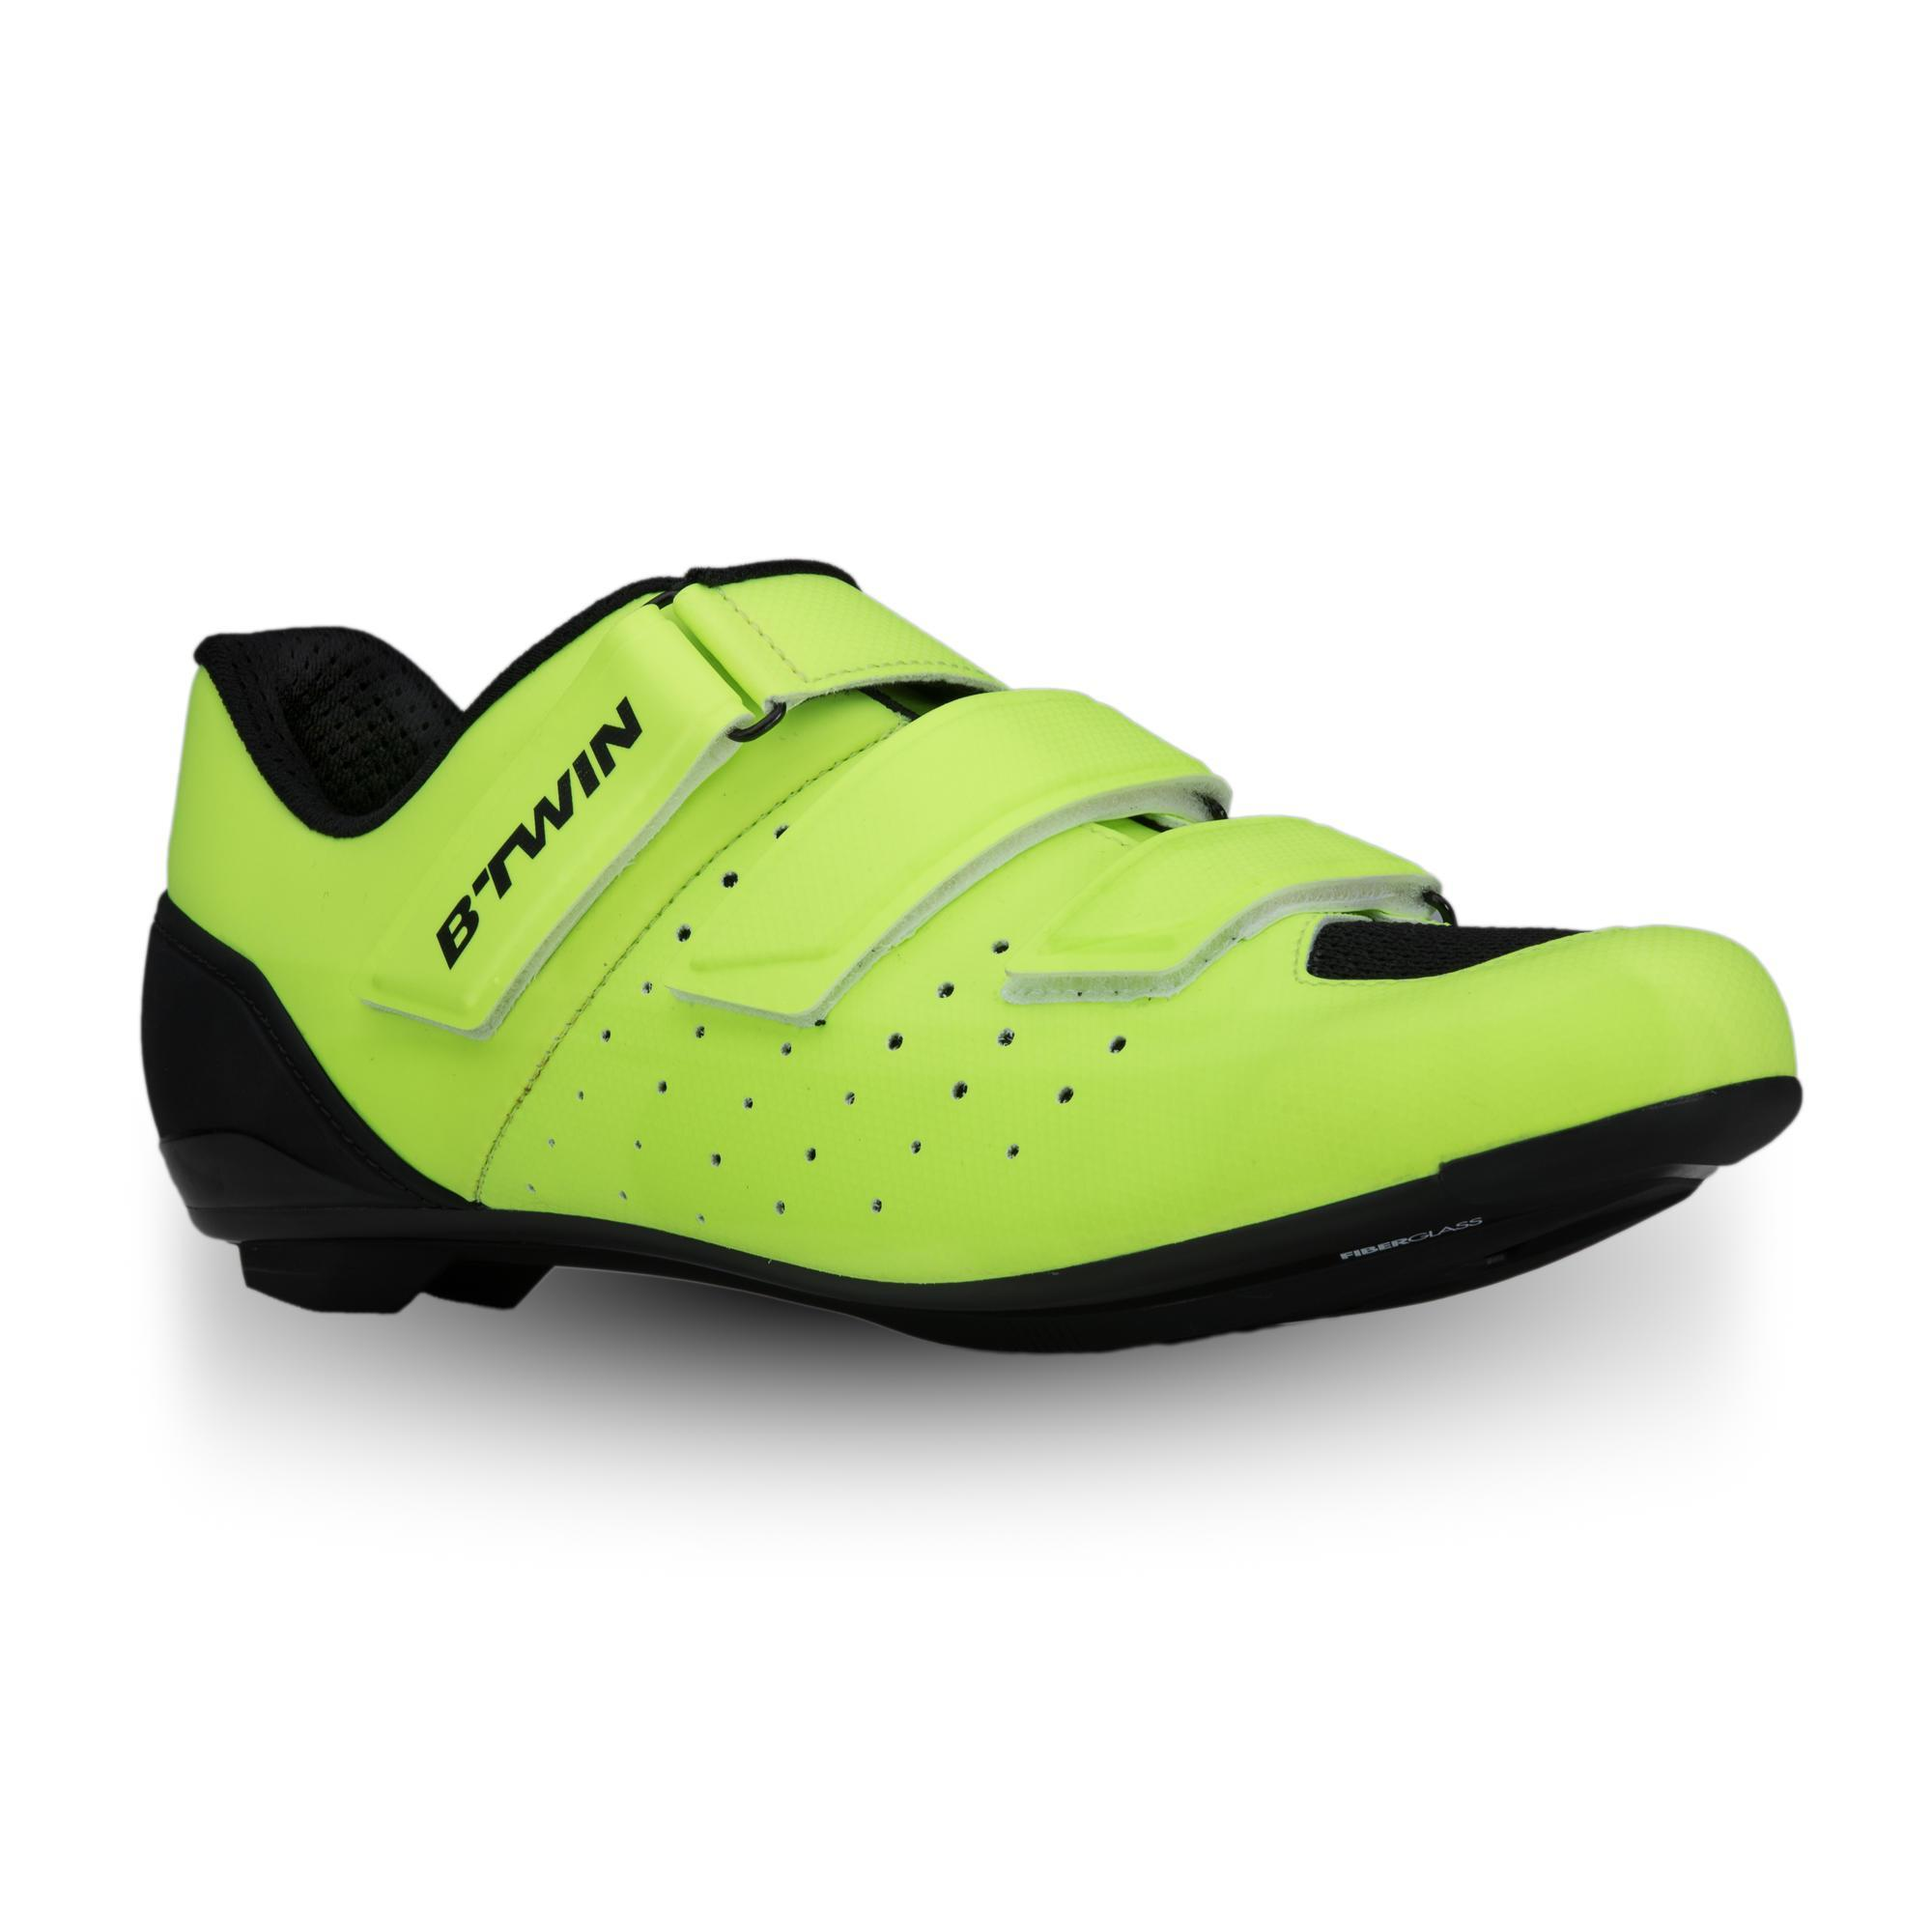 2539393 B twin Fietsschoenen racefiets RoadRacing 500 fluogeel